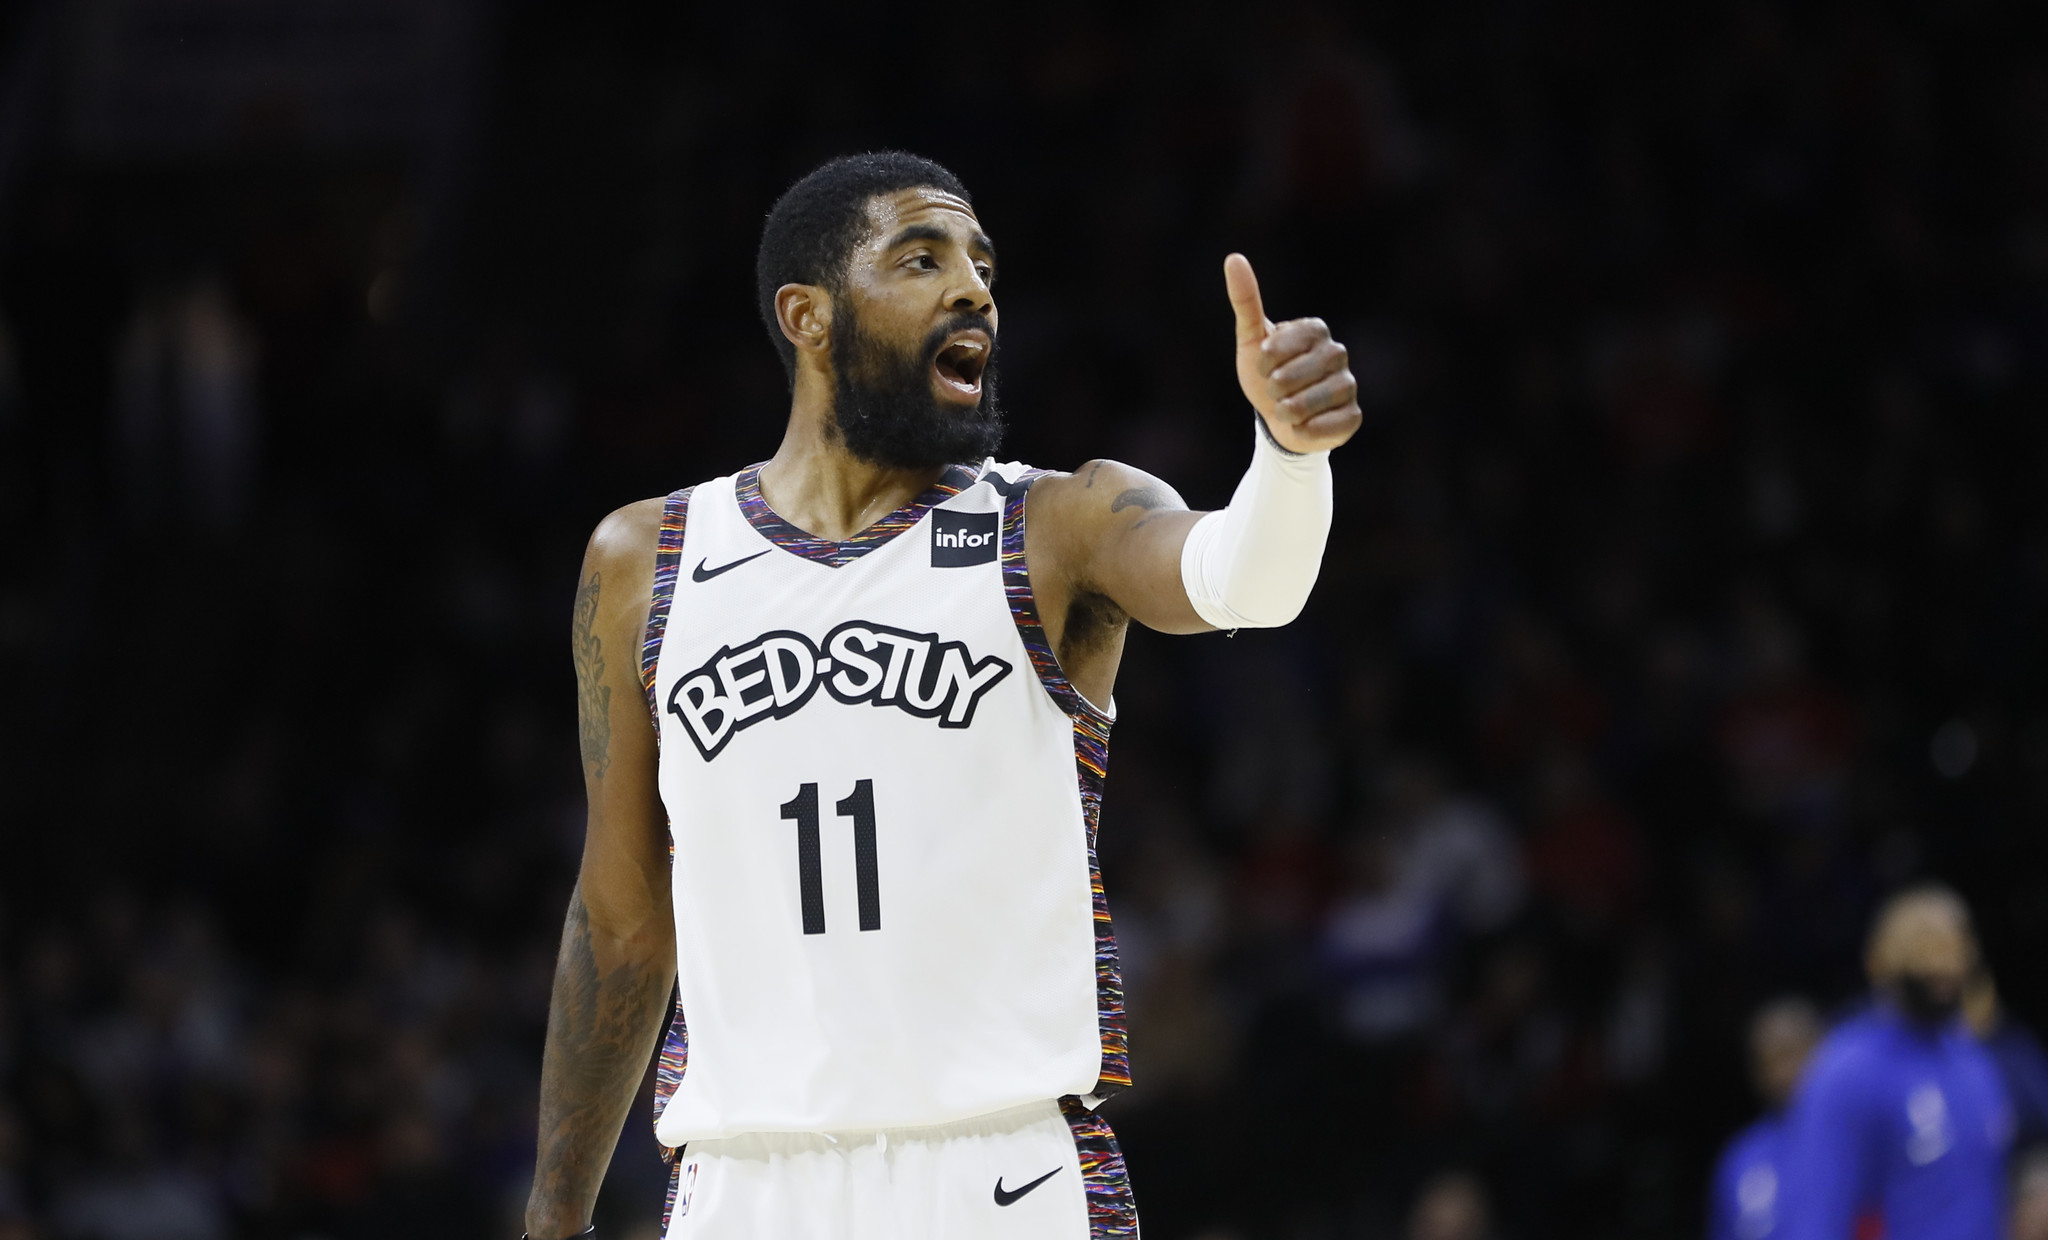 Kyrie Irving defends his leadership: 'If you're not in our locker room, stay the f--- out'